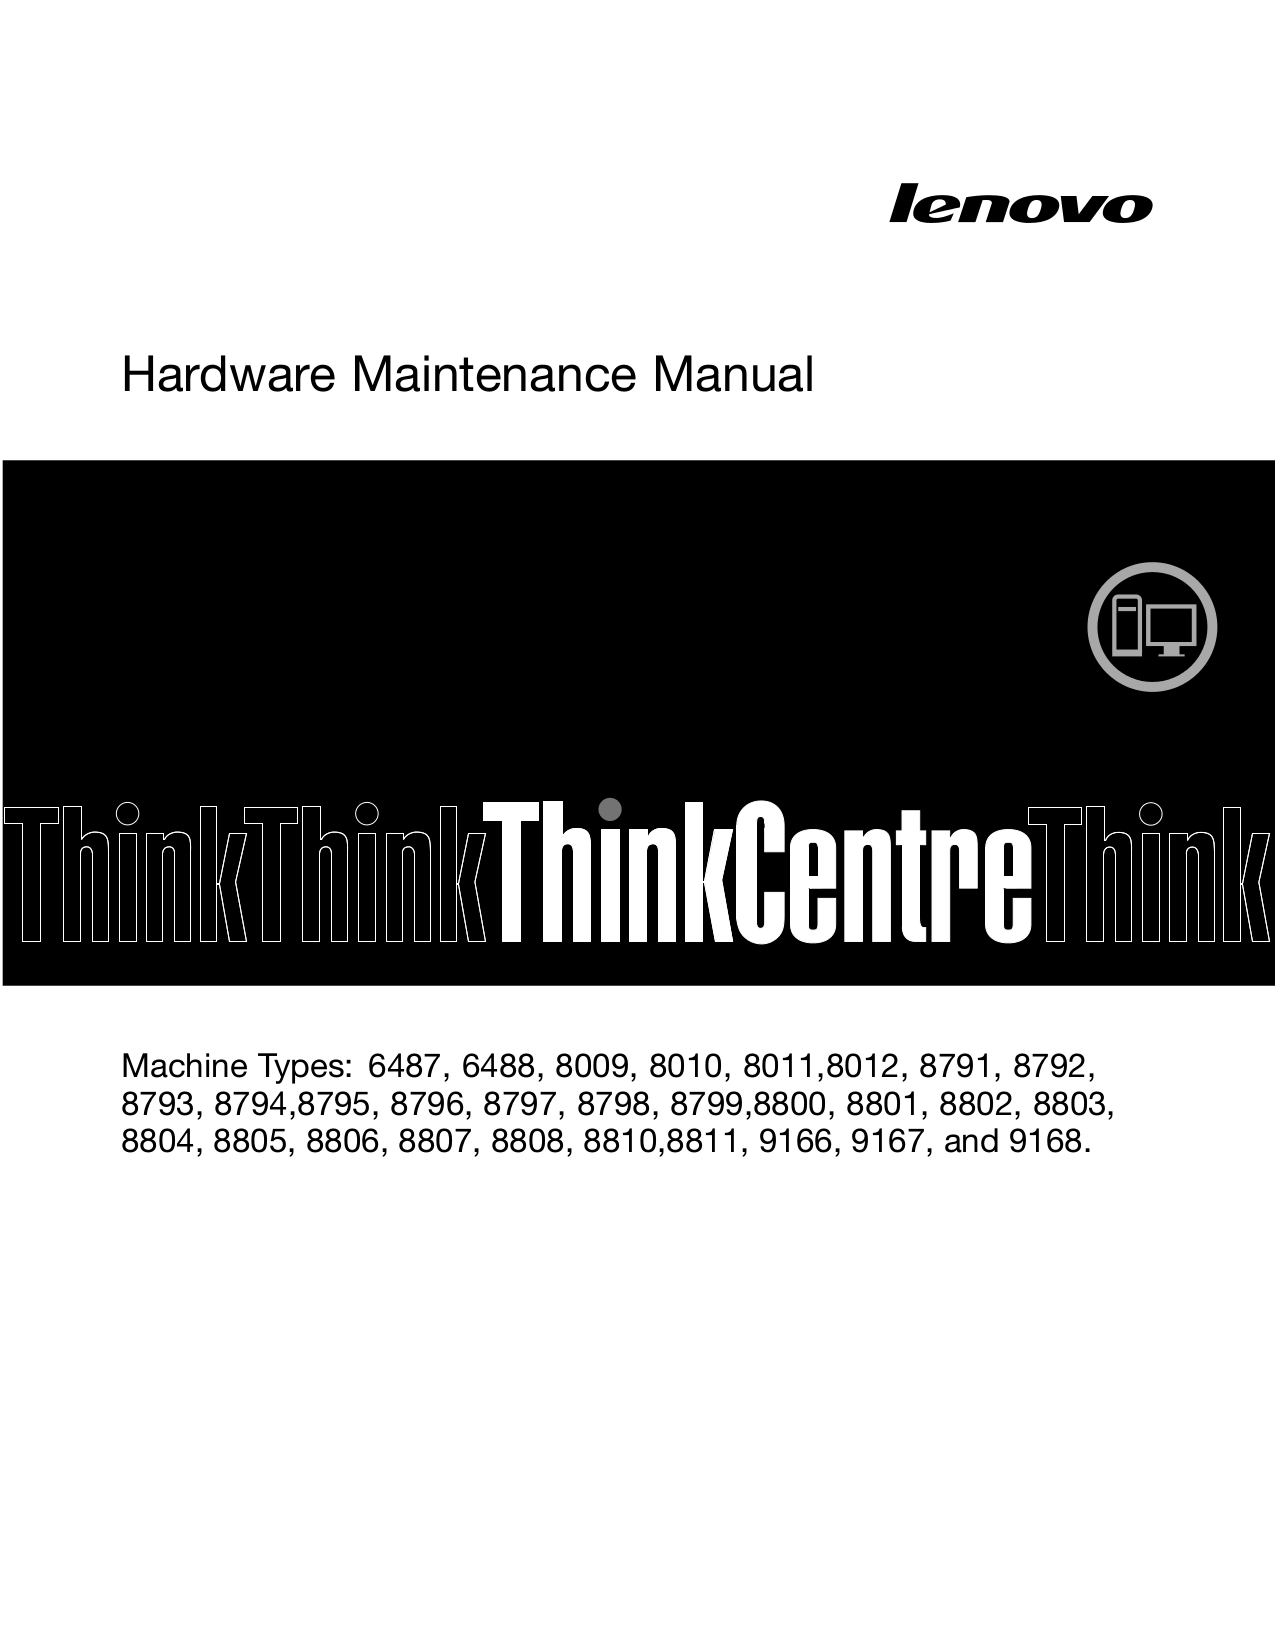 pdf for Lenovo Desktop ThinkCentre M55 8806 manual